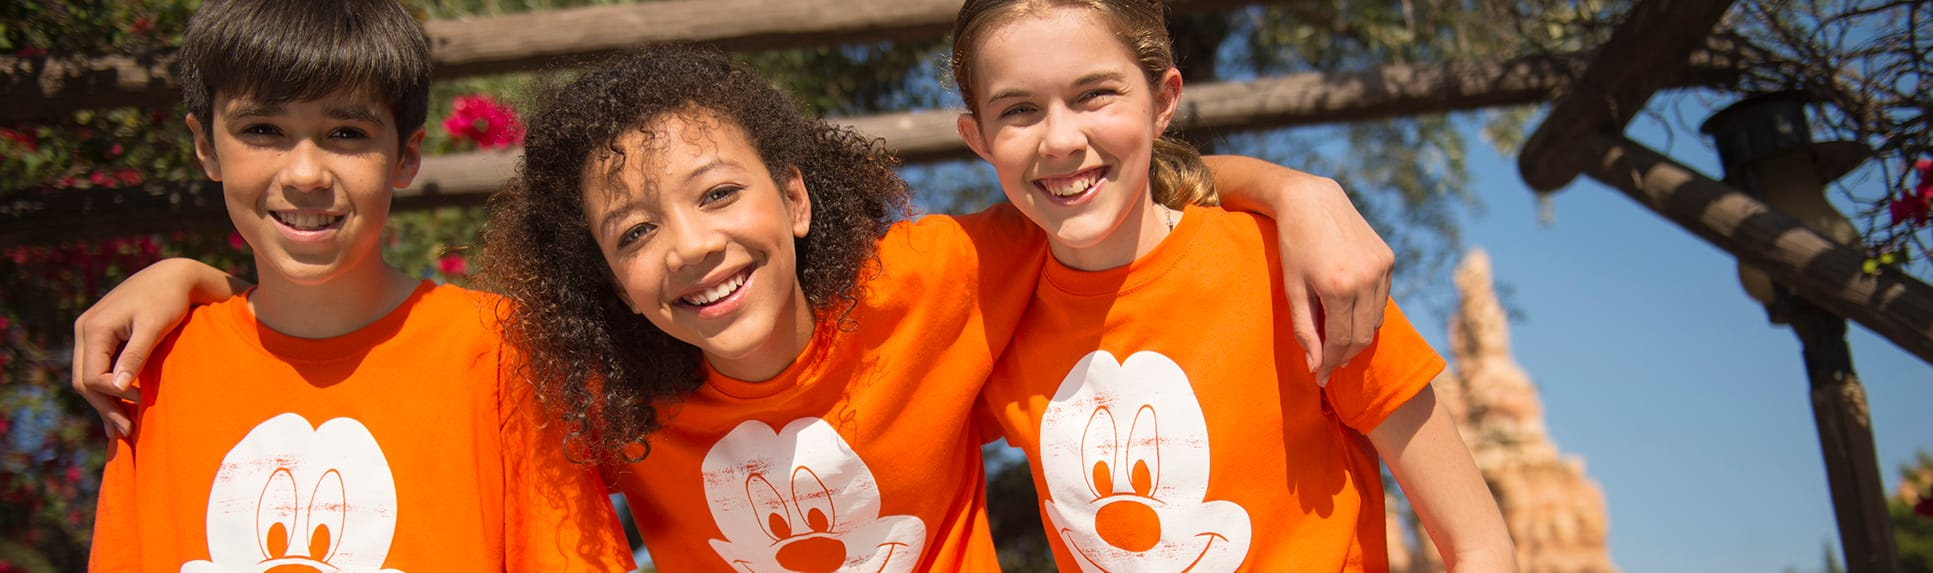 Smiling kids wearing matching shirts with Mickey Mouse logos